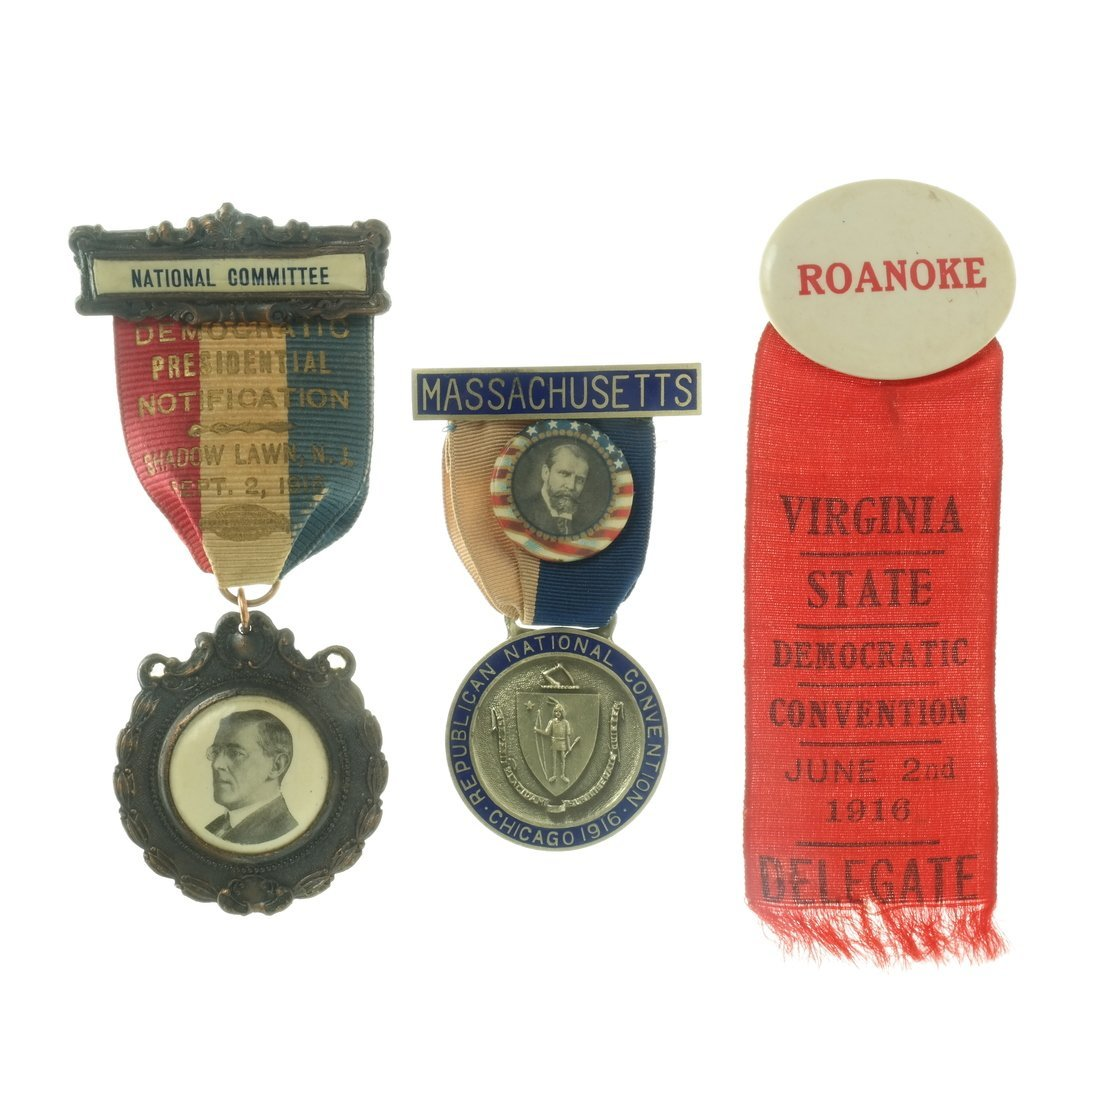 Three 1916 Convention Badges